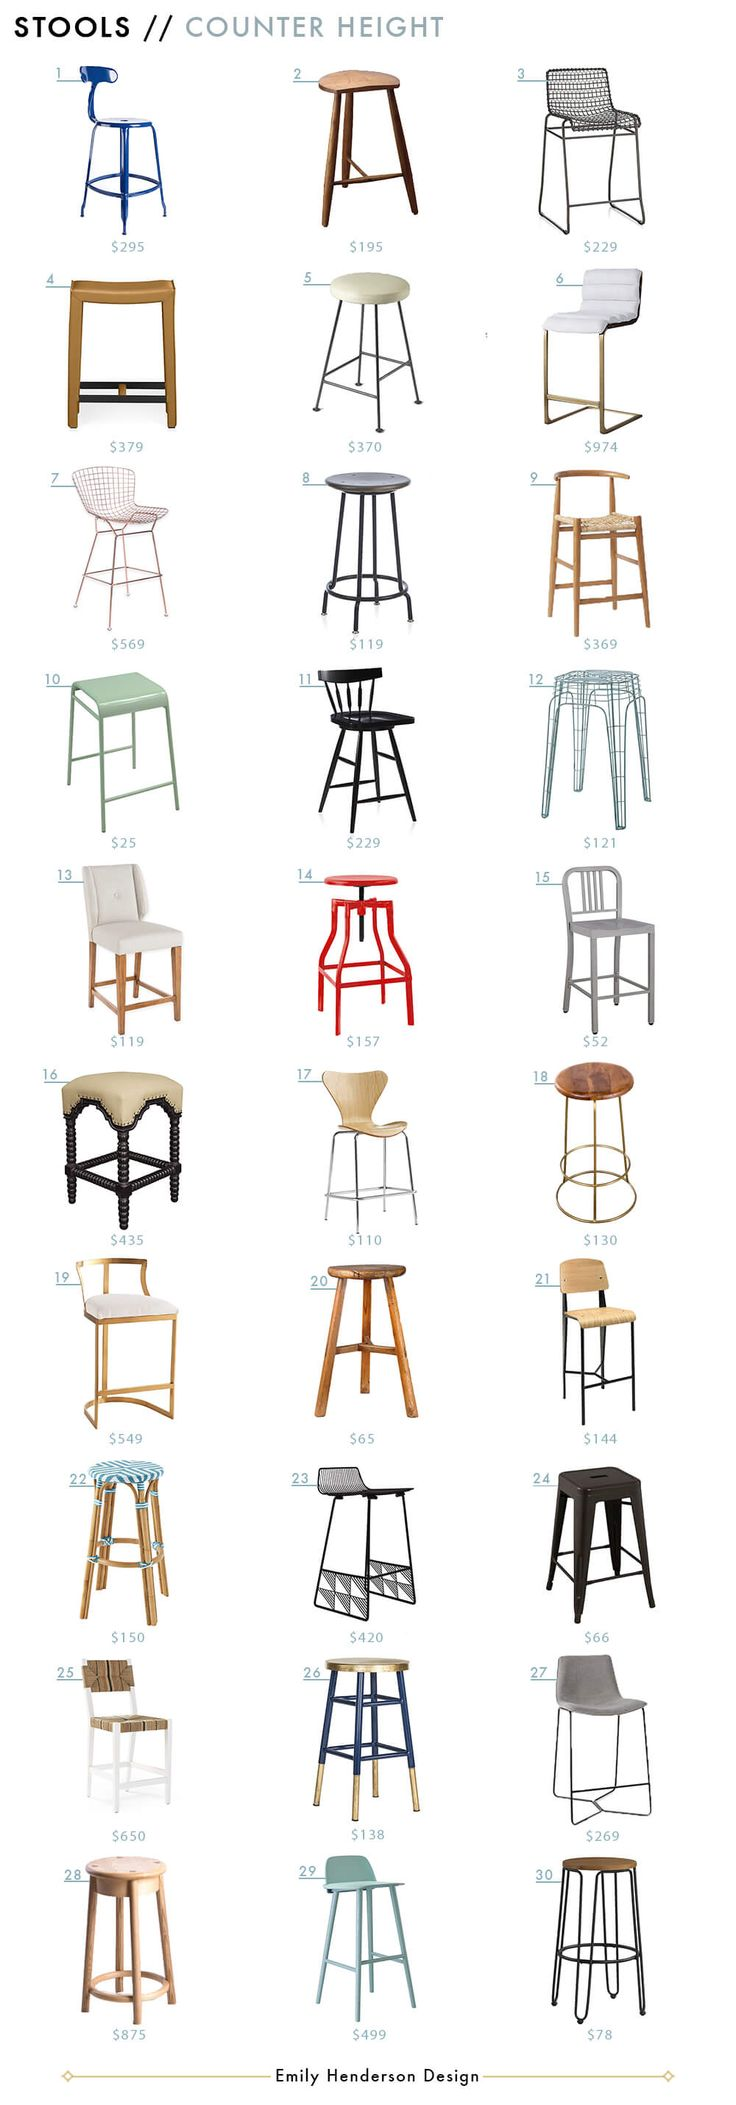 Best 25+ Counter height stools ideas on Pinterest ...